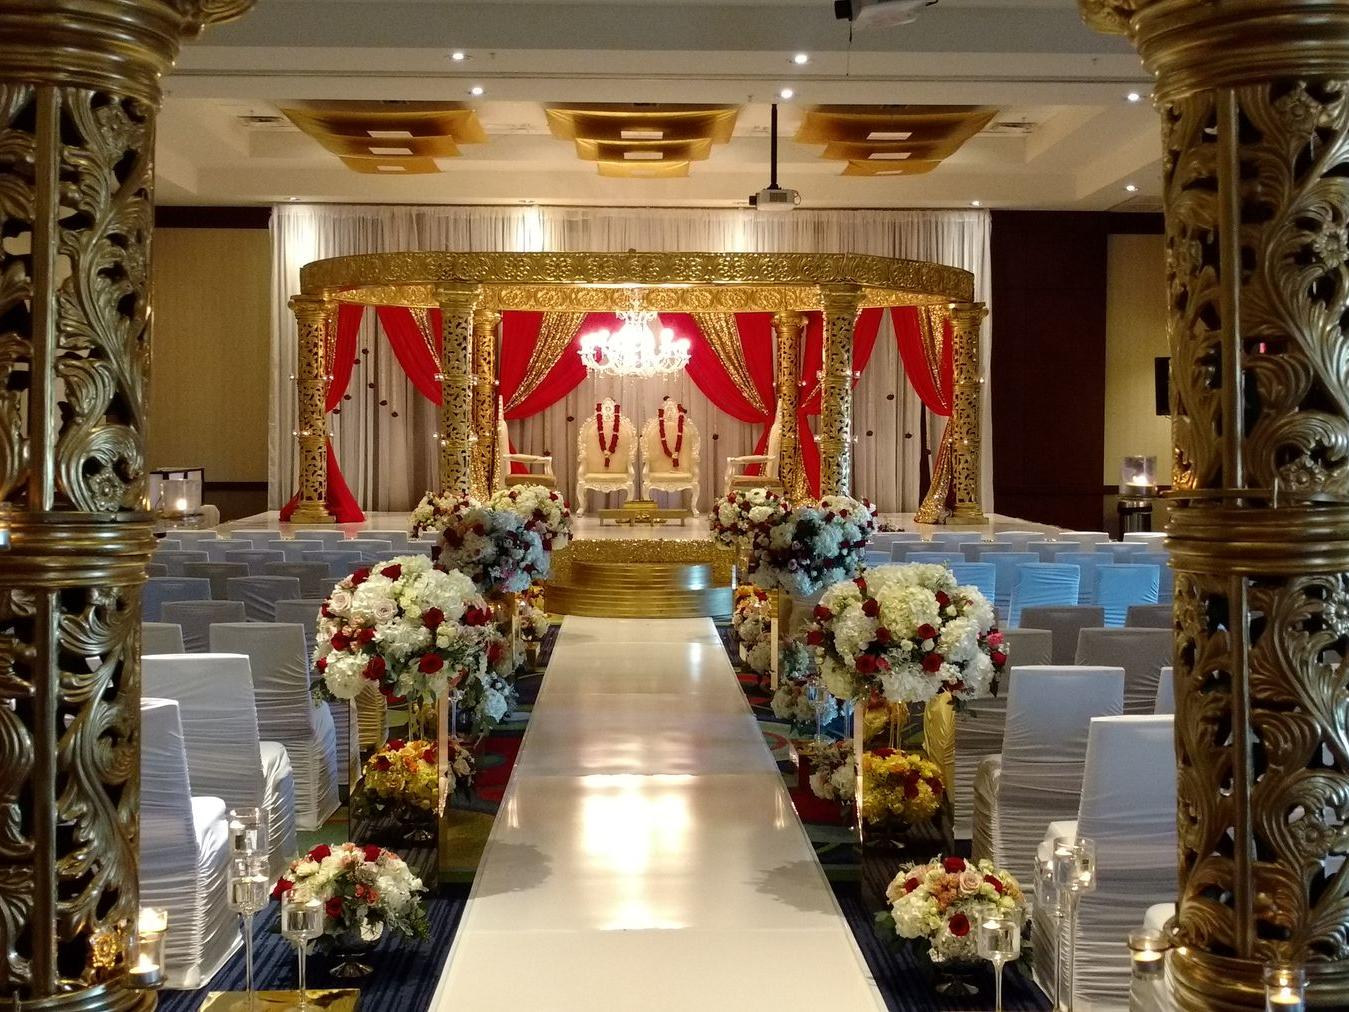 wedding aisle with flowers and chairs facing altar